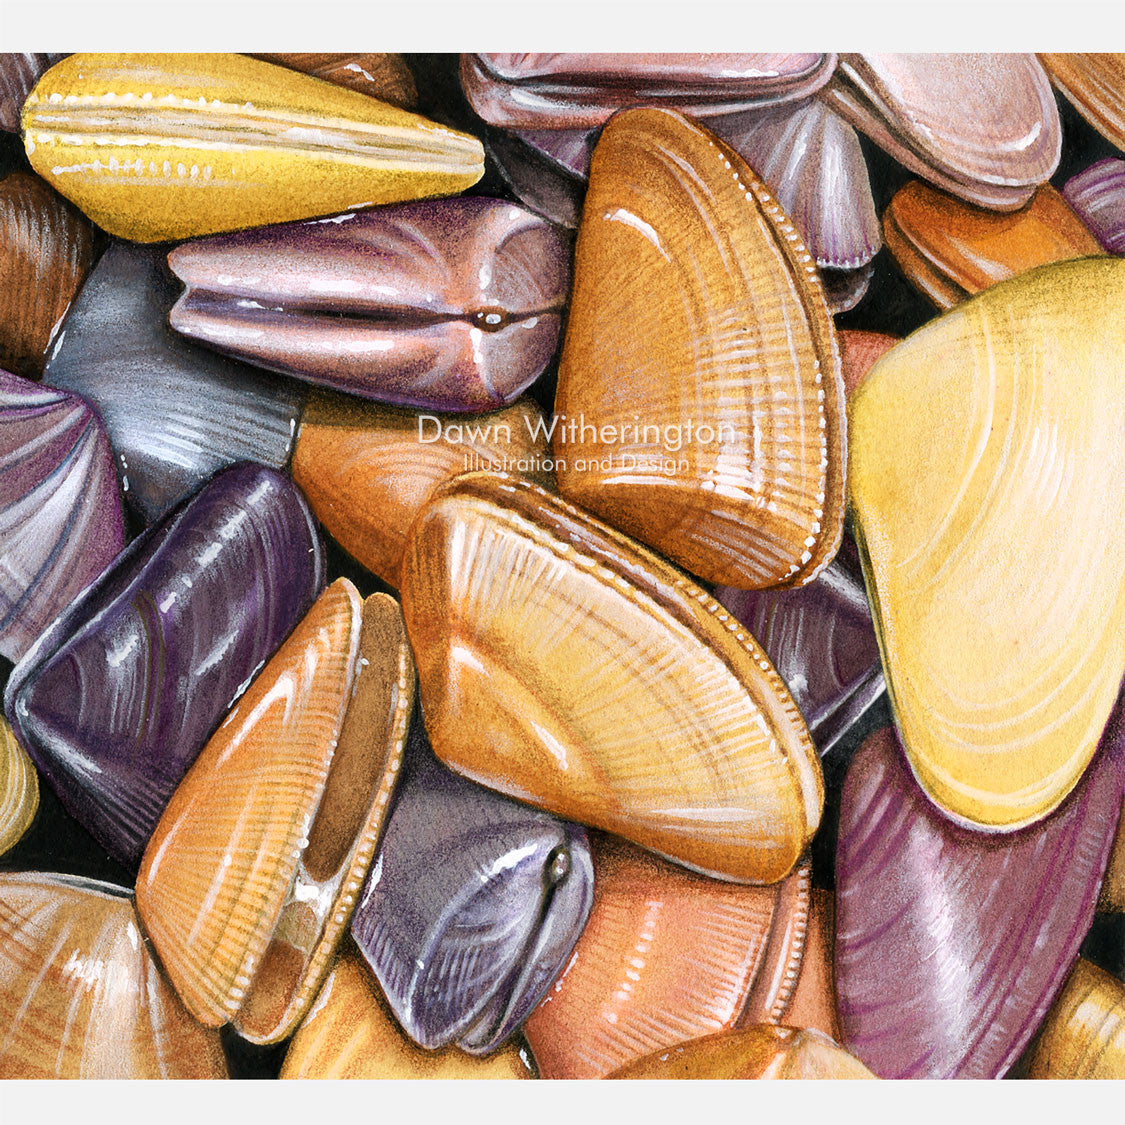 Coquina clams